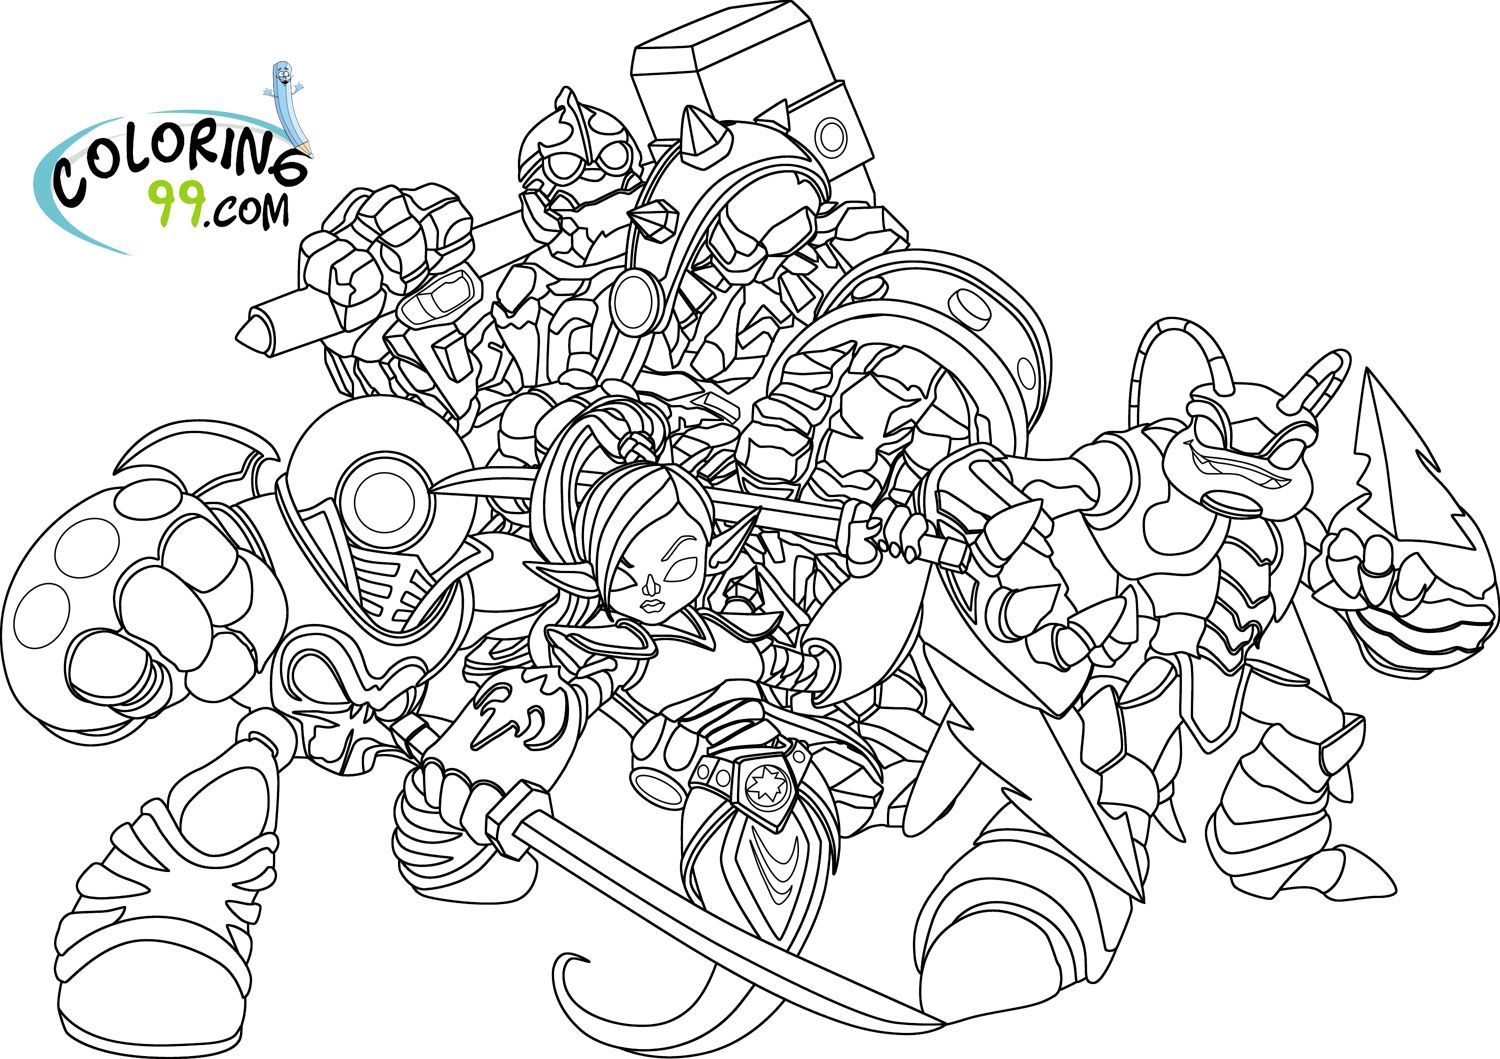 skylanders coloring pages dejau printable - photo#6